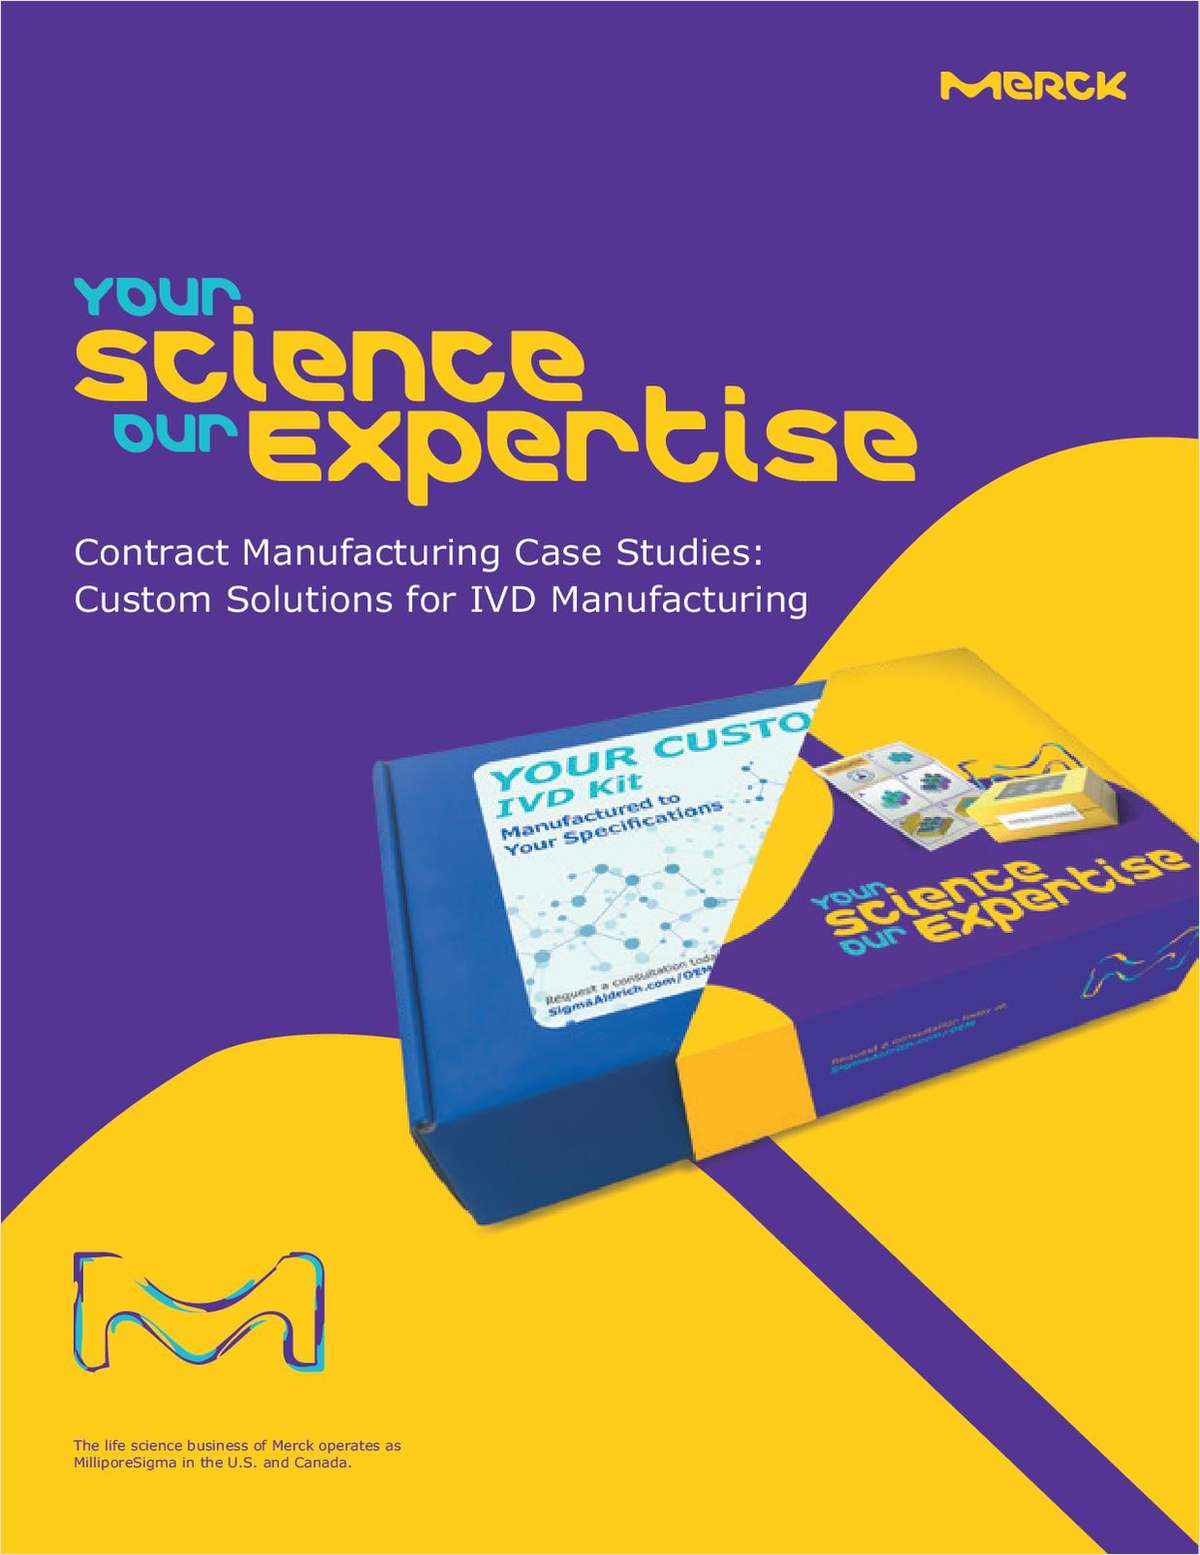 Contract Manufacturing Case Studies: Custom Solutions for IVD Manufacturing